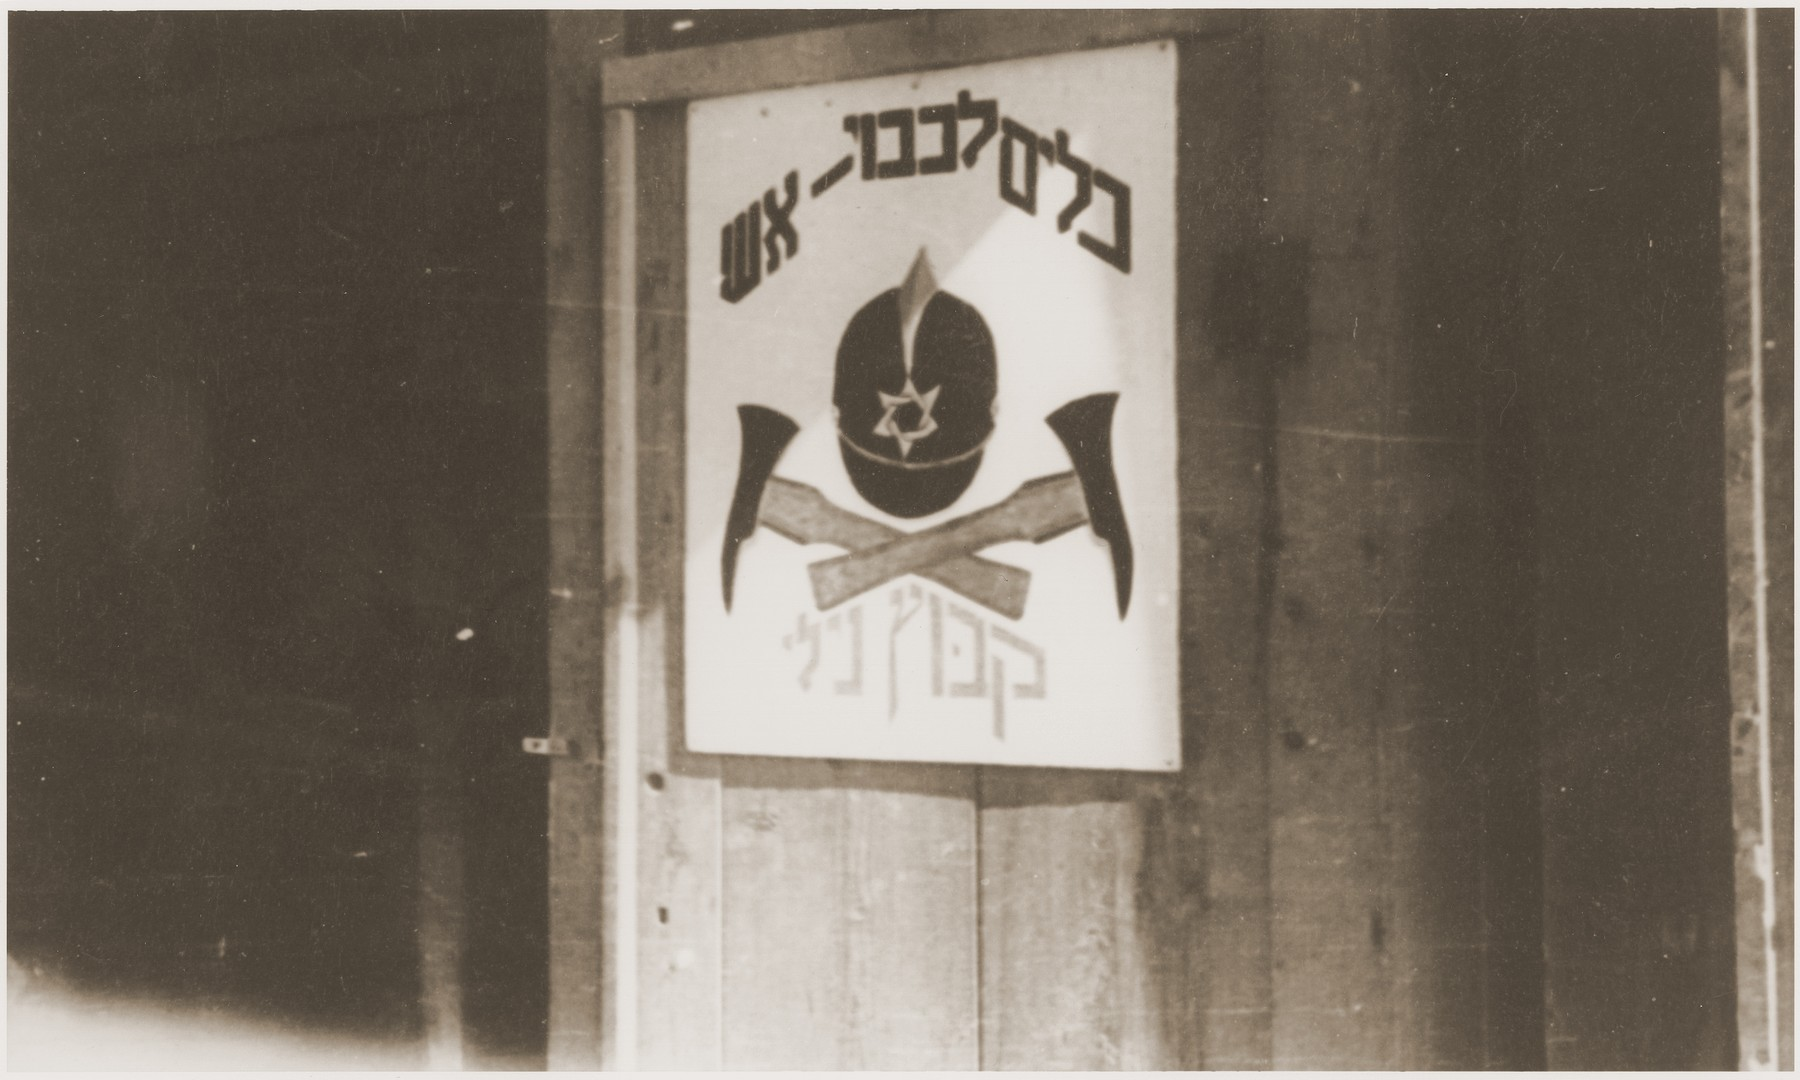 A Hebrew sign posted on the door of a shed indicates that firefighting equipment for the Kibbutz Nili hachshara (Zionist collective) is stored here.